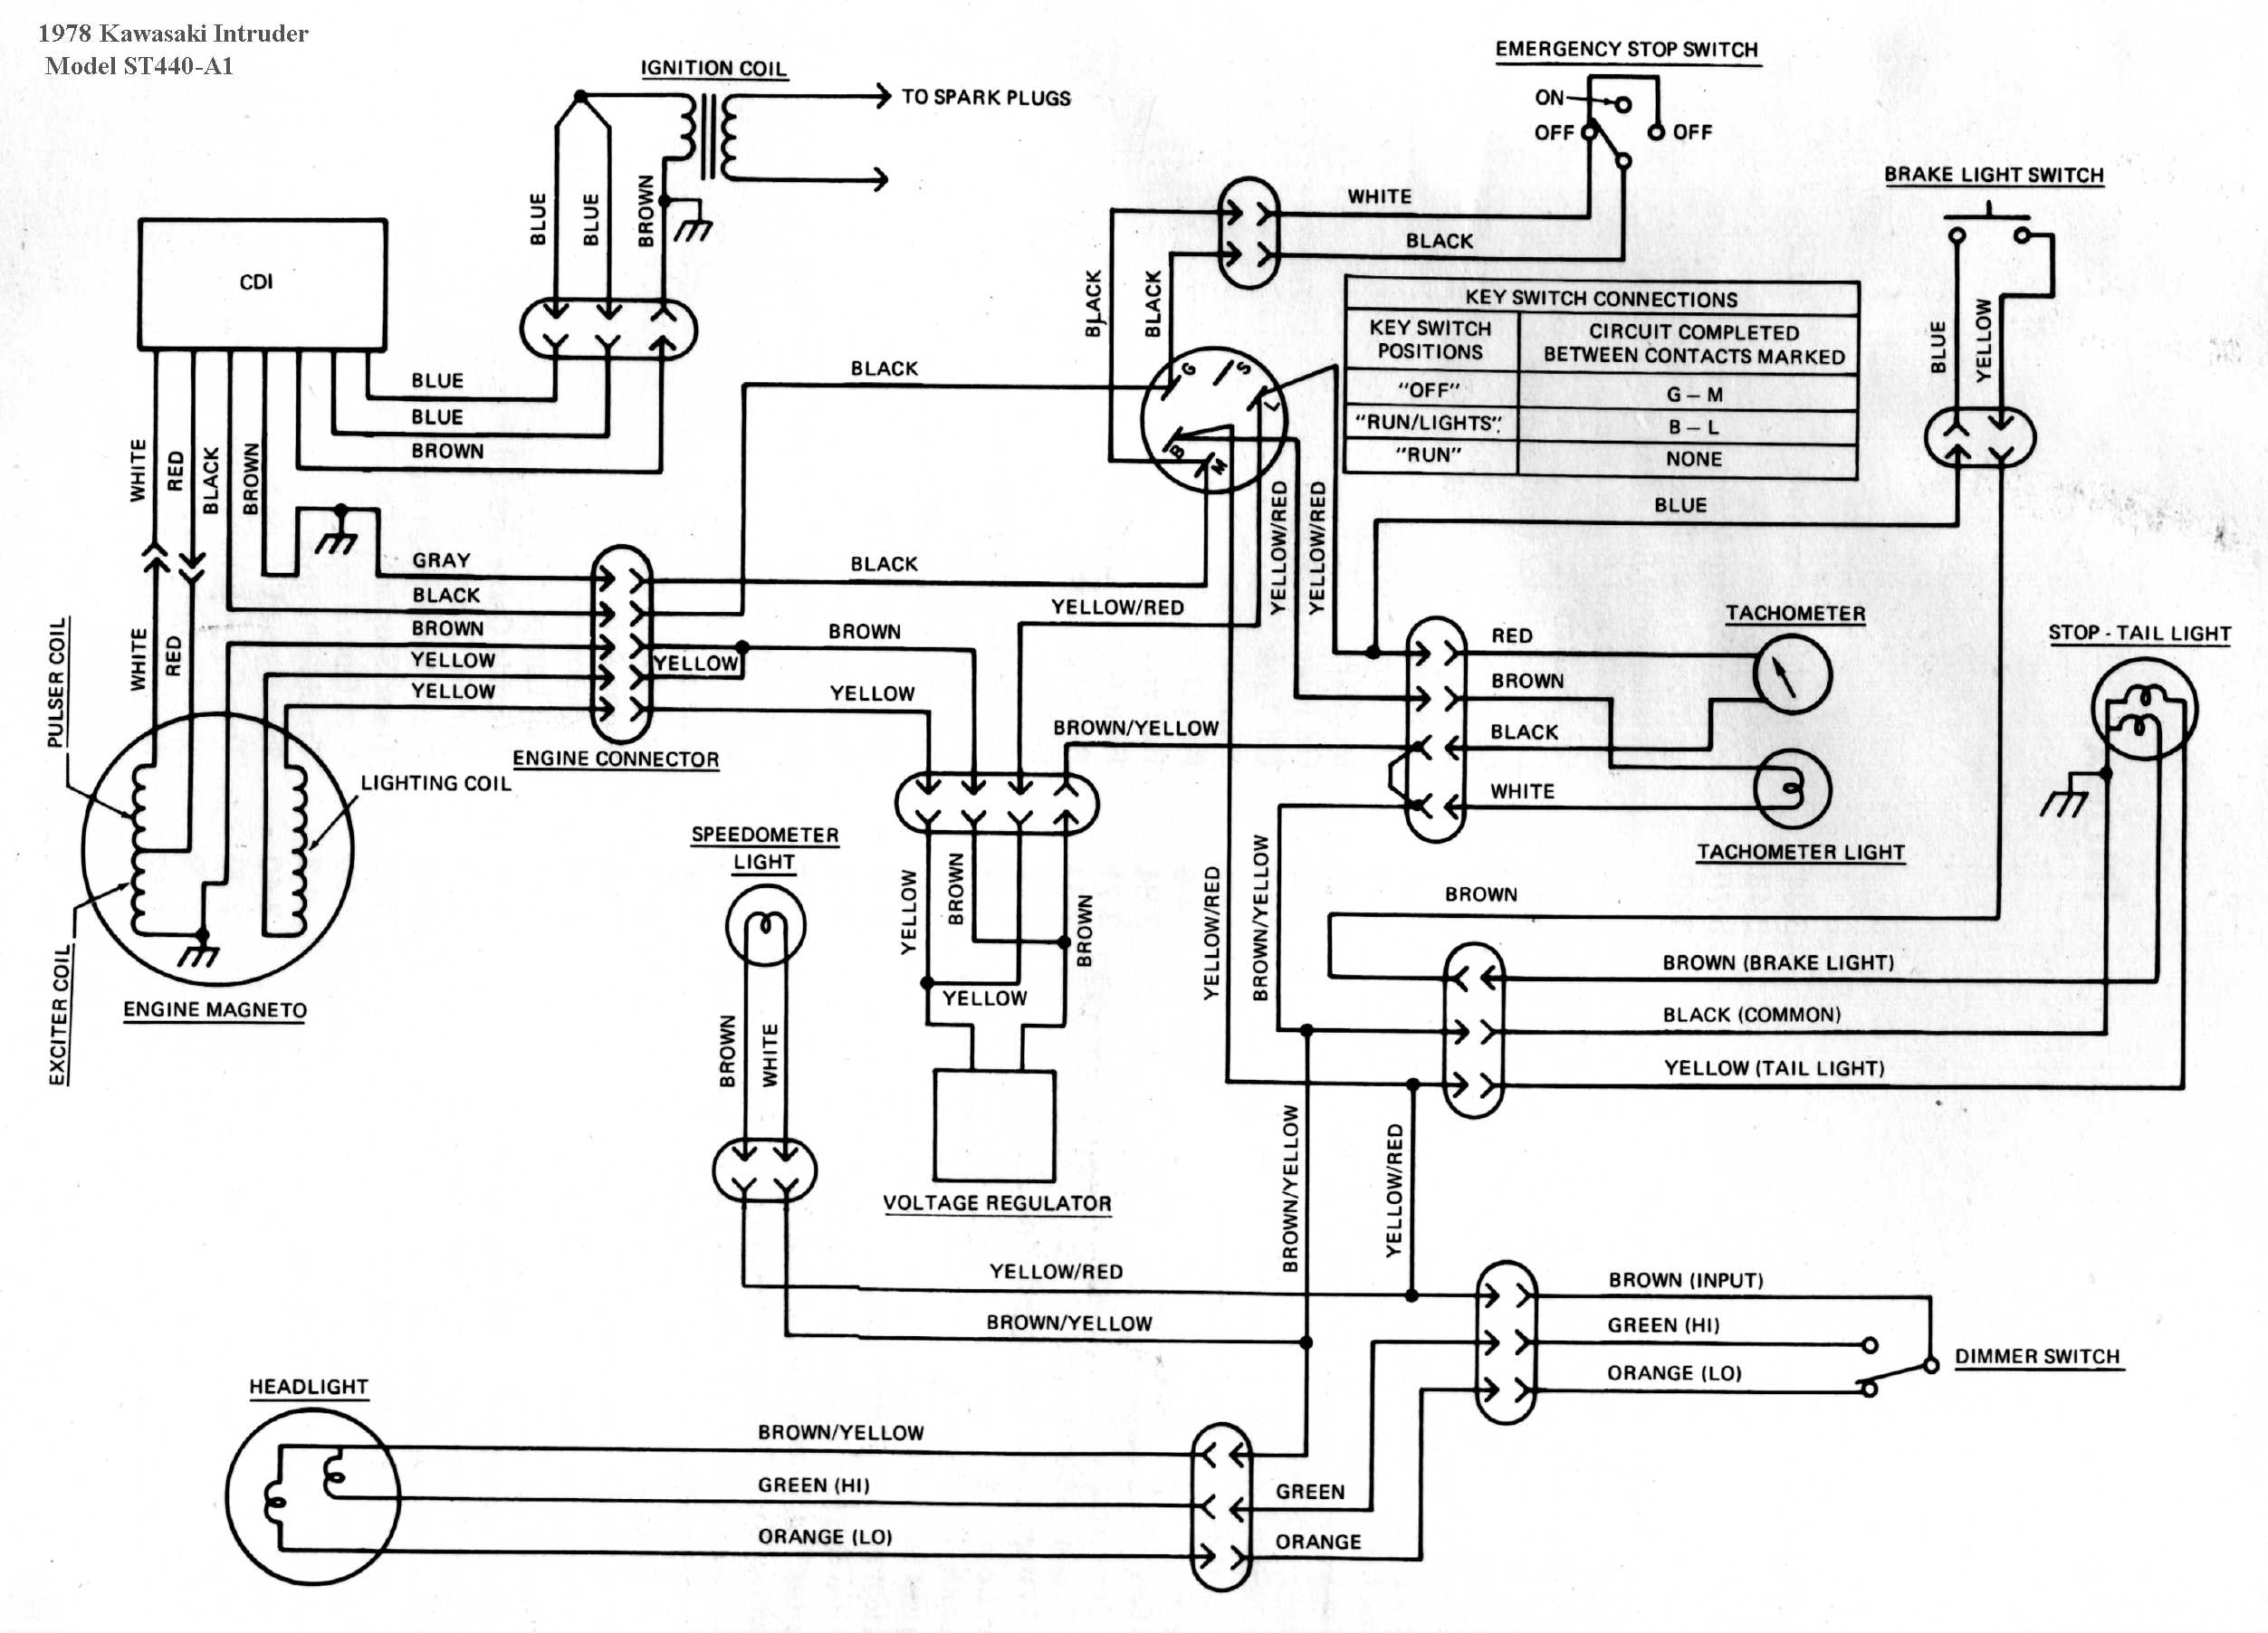 Srx 700 Wiring Diagram Another Blog About Suzuki Vl 1500 Snowmobile Diagrams